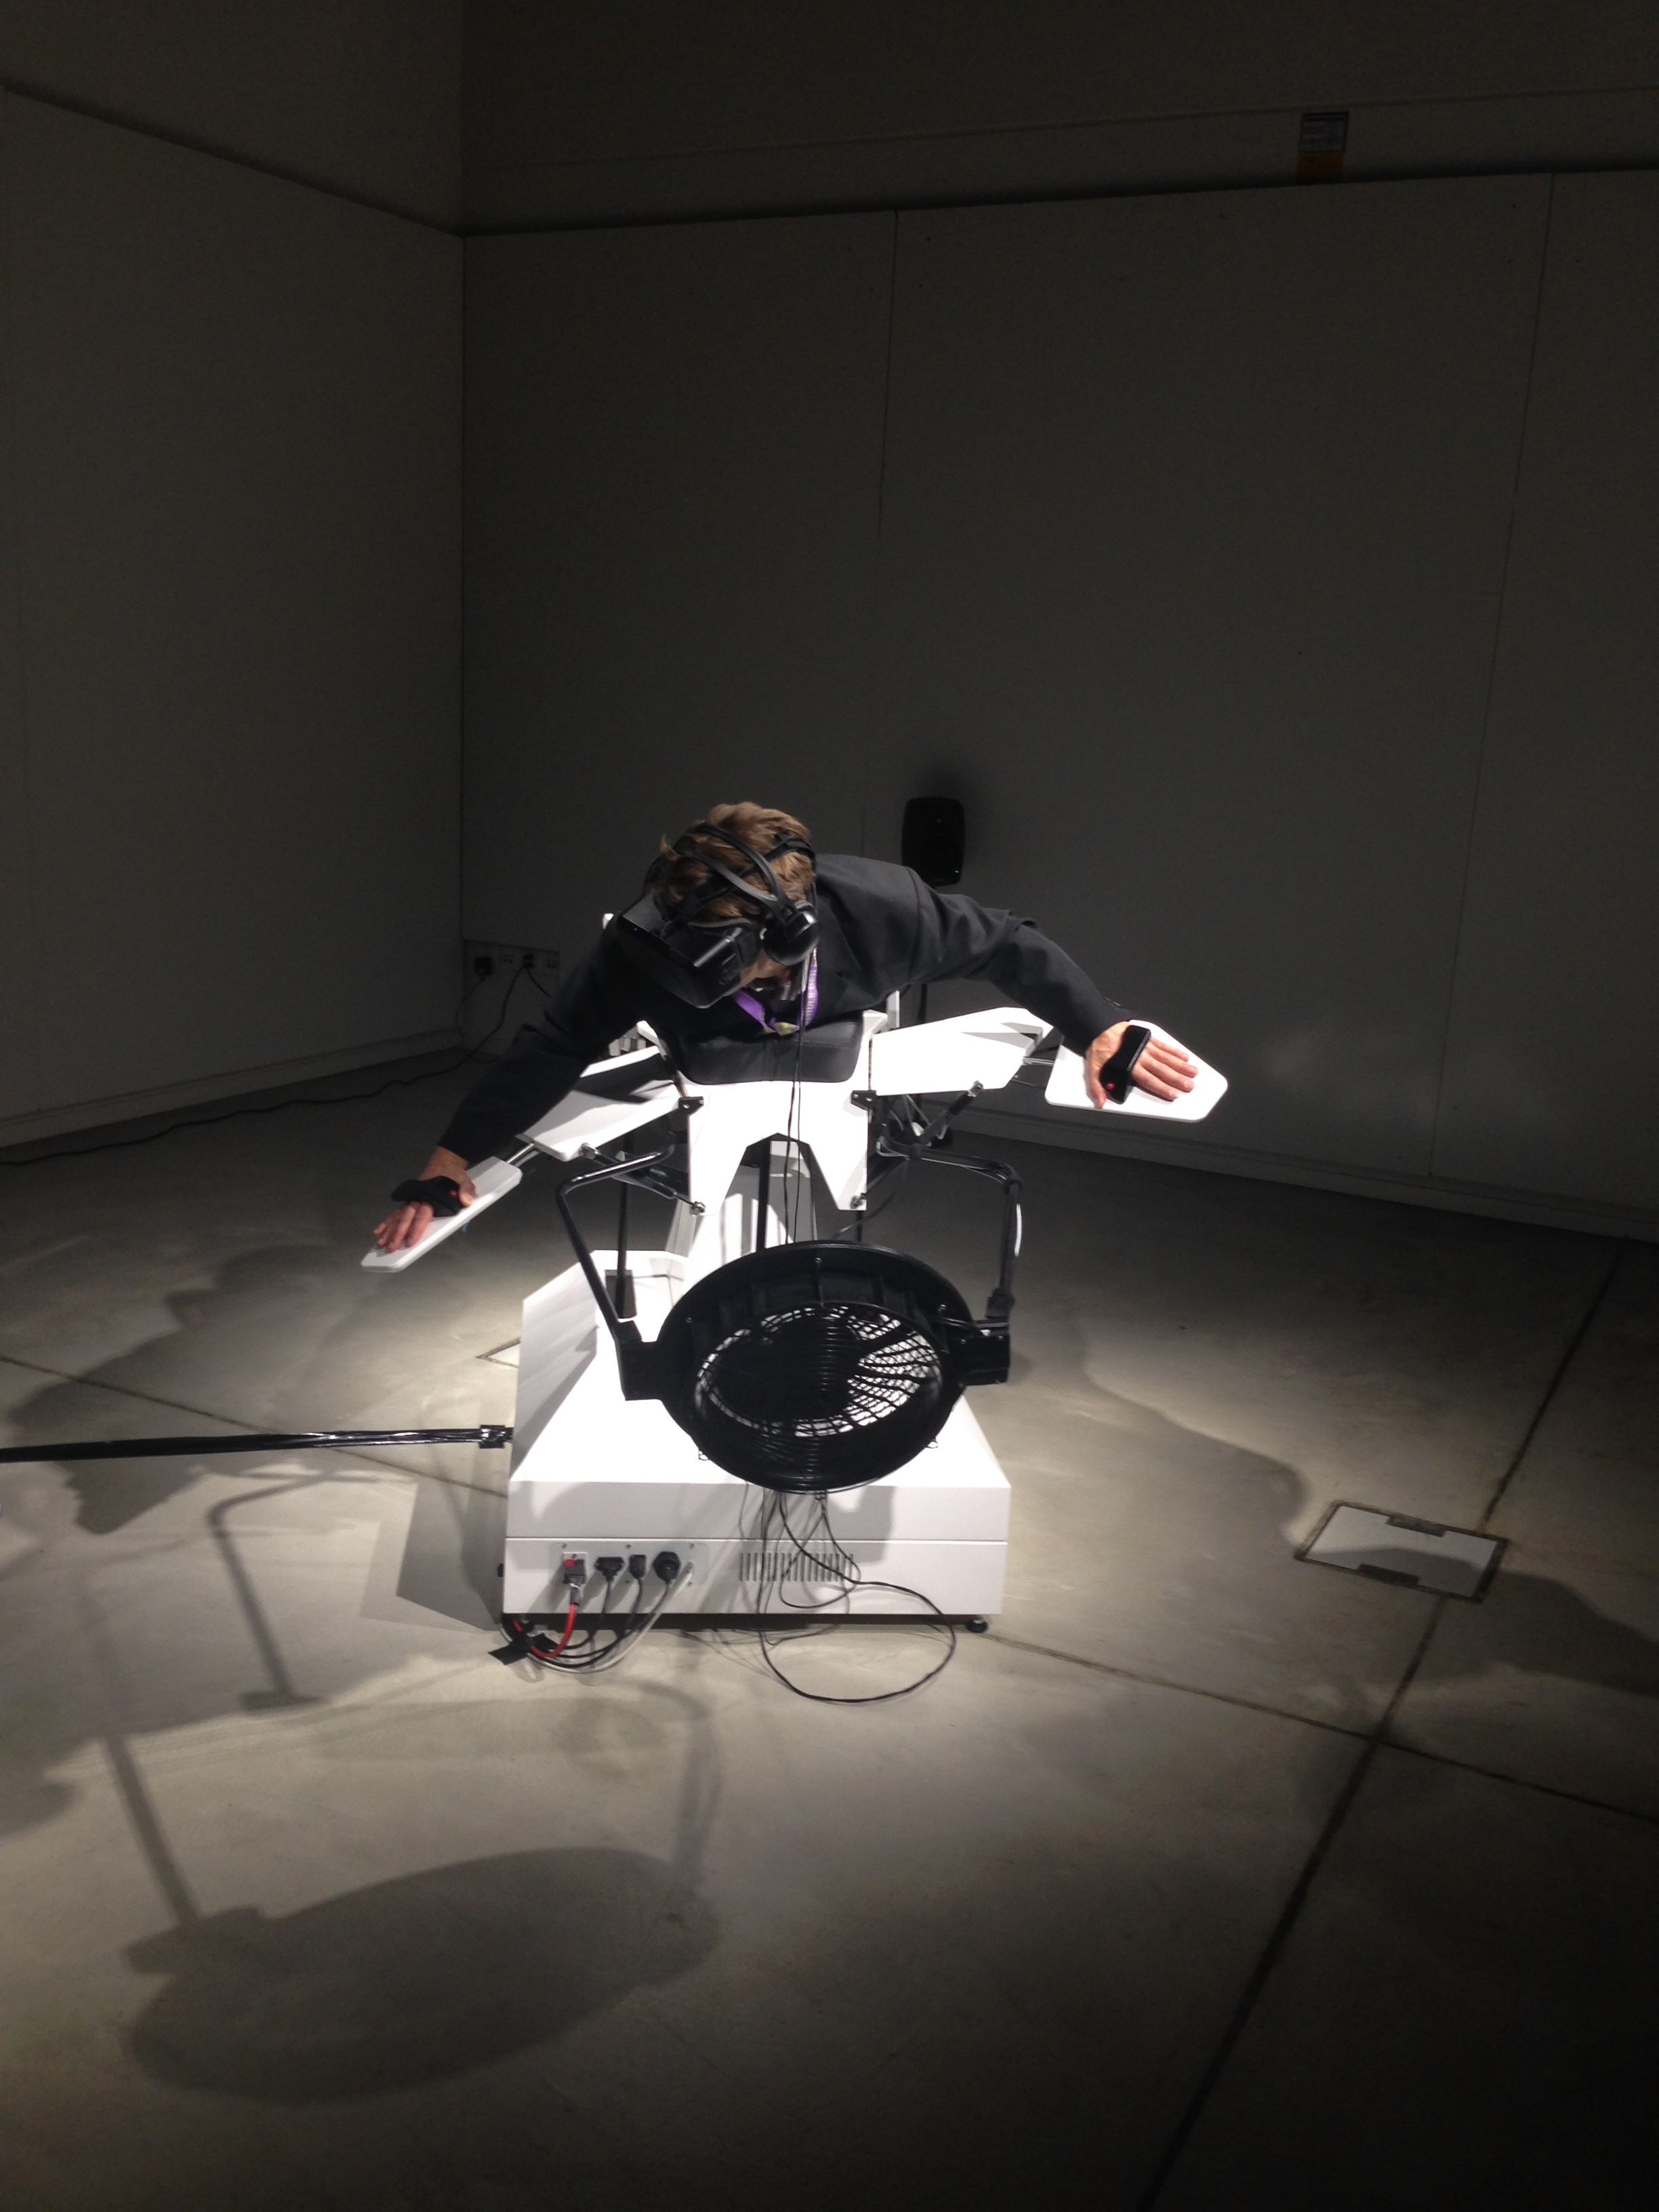 Roman Zweifel takes a flight with birdly